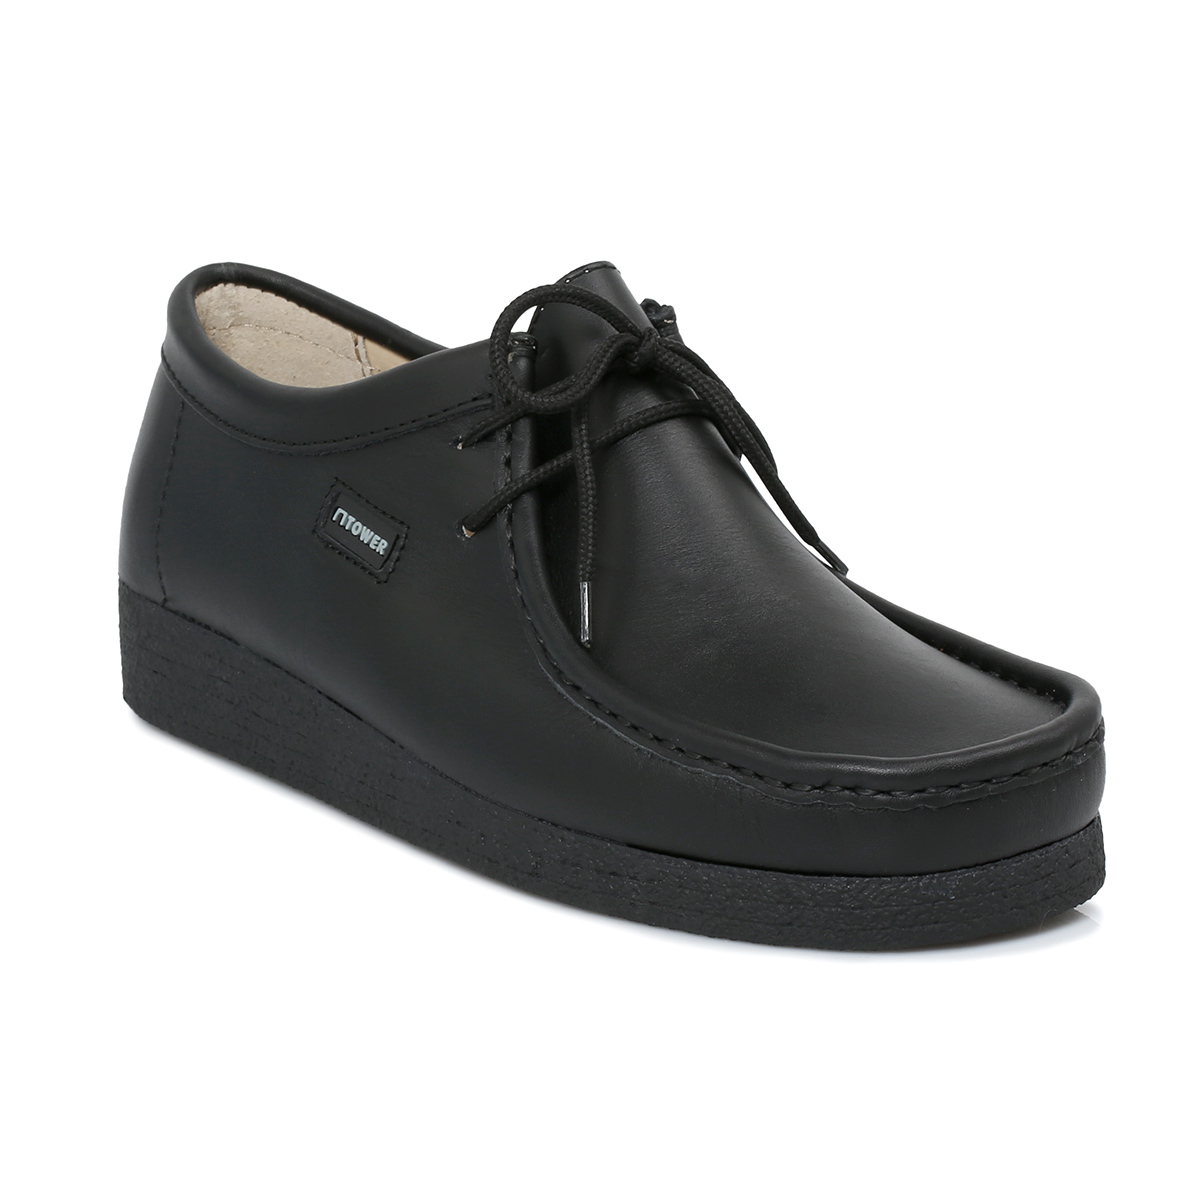 tower 1000 black napa leather wallaby mens womens school